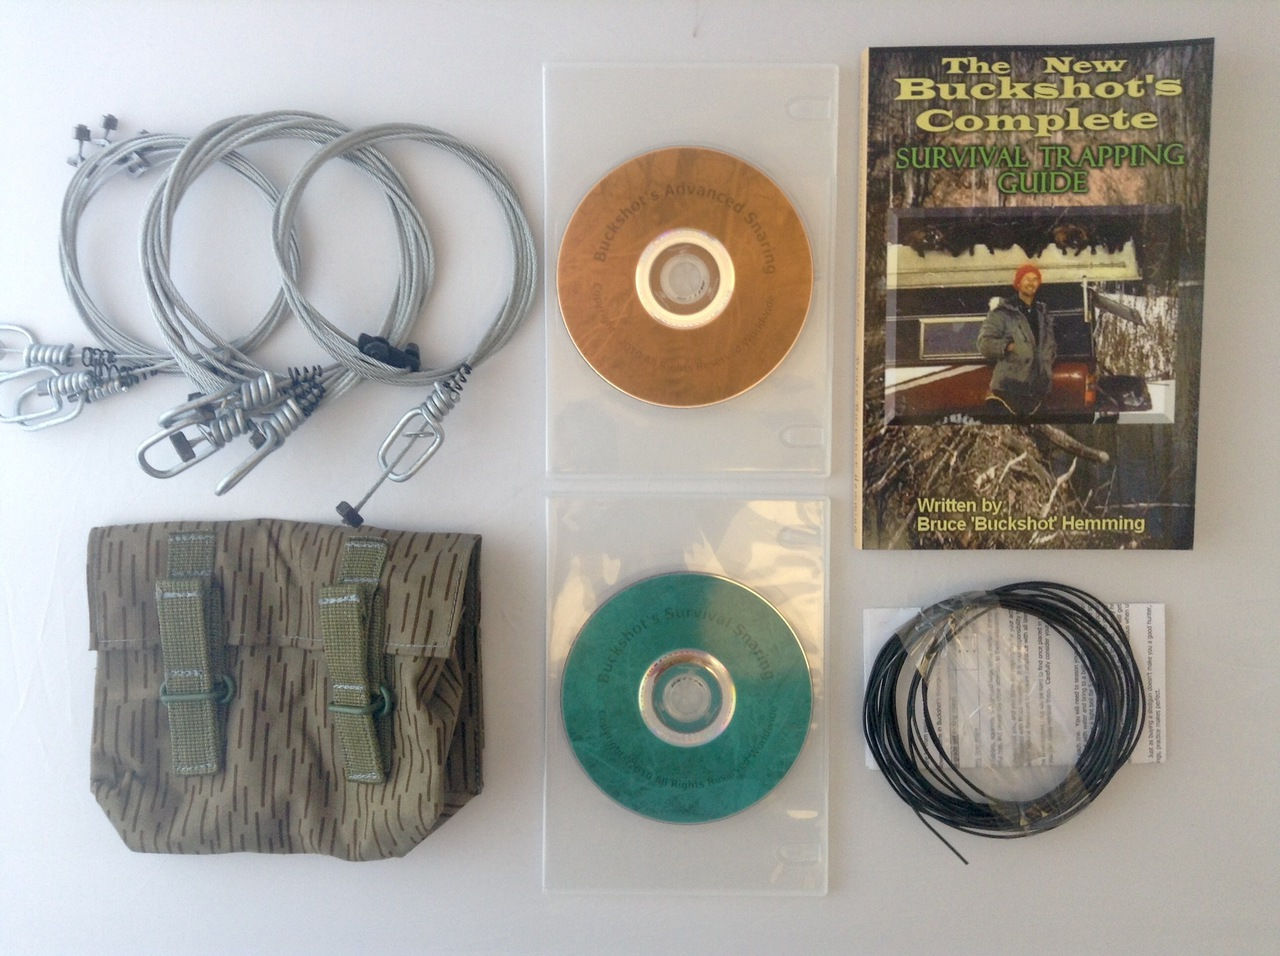 Buckshot's Small Snare Kit, Buckshot's Complete Survival Trapping Guide, Survival Snaring DVD & Advanced Survival Snaring DVD